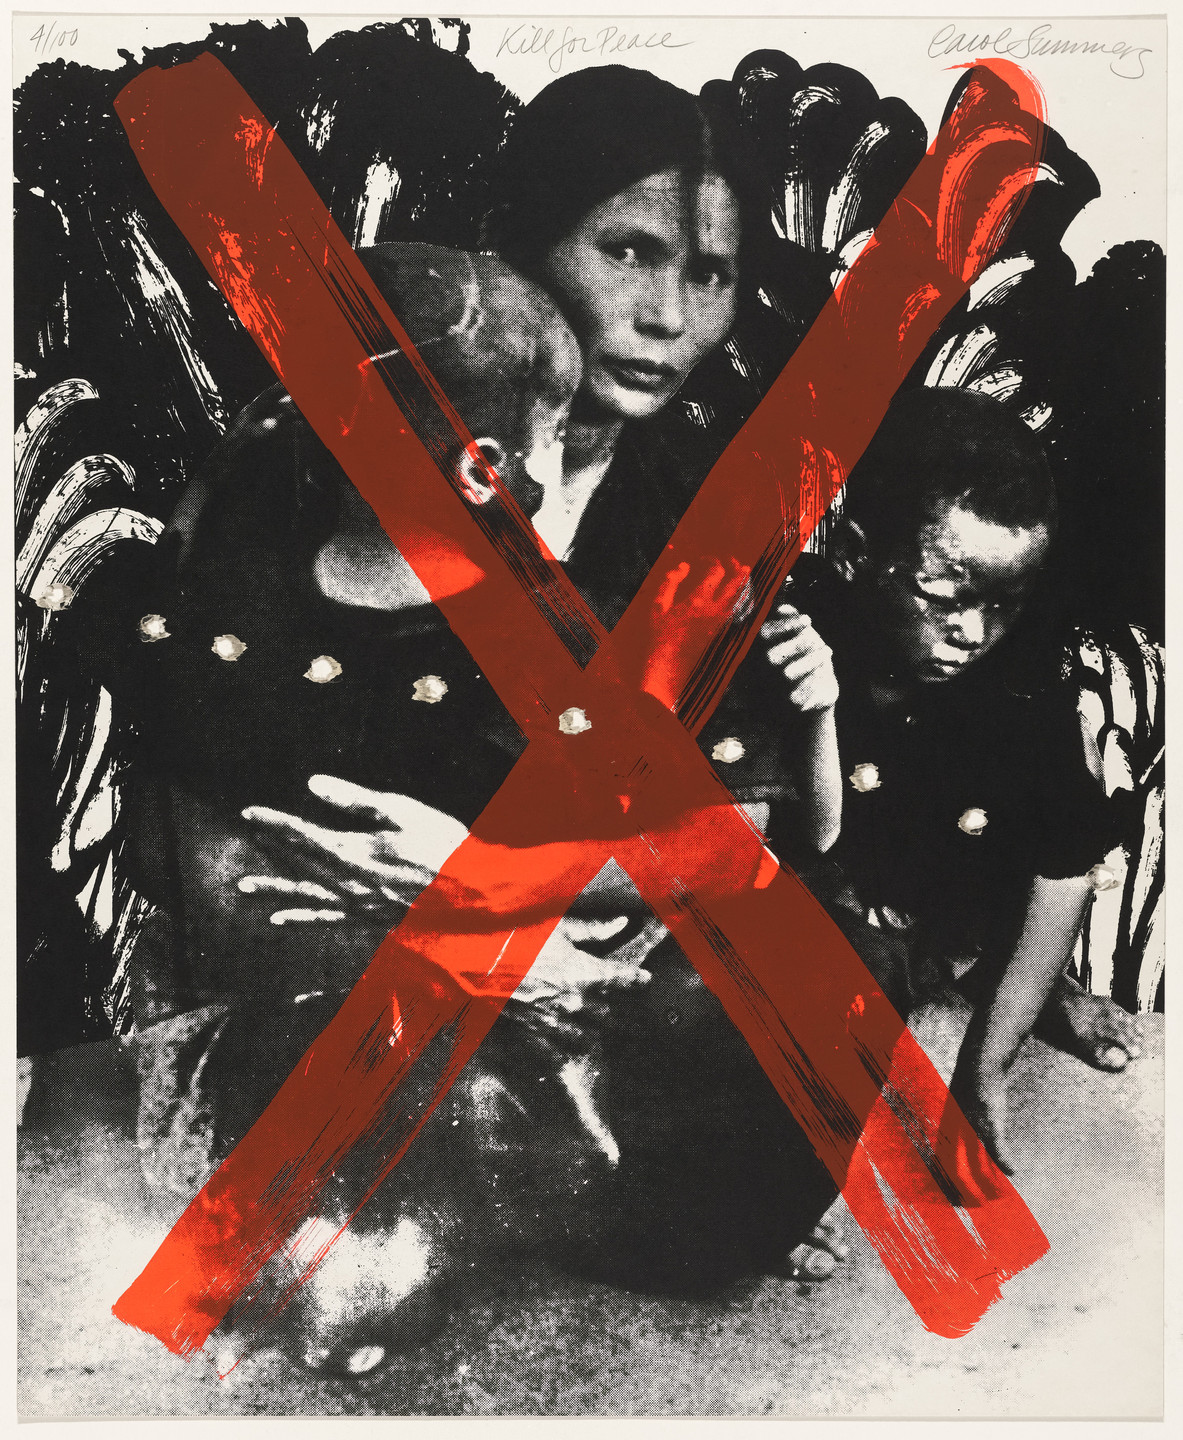 Carol Summers. Kill for Peace from Artists and Writers against the War in Vietnam. 1967